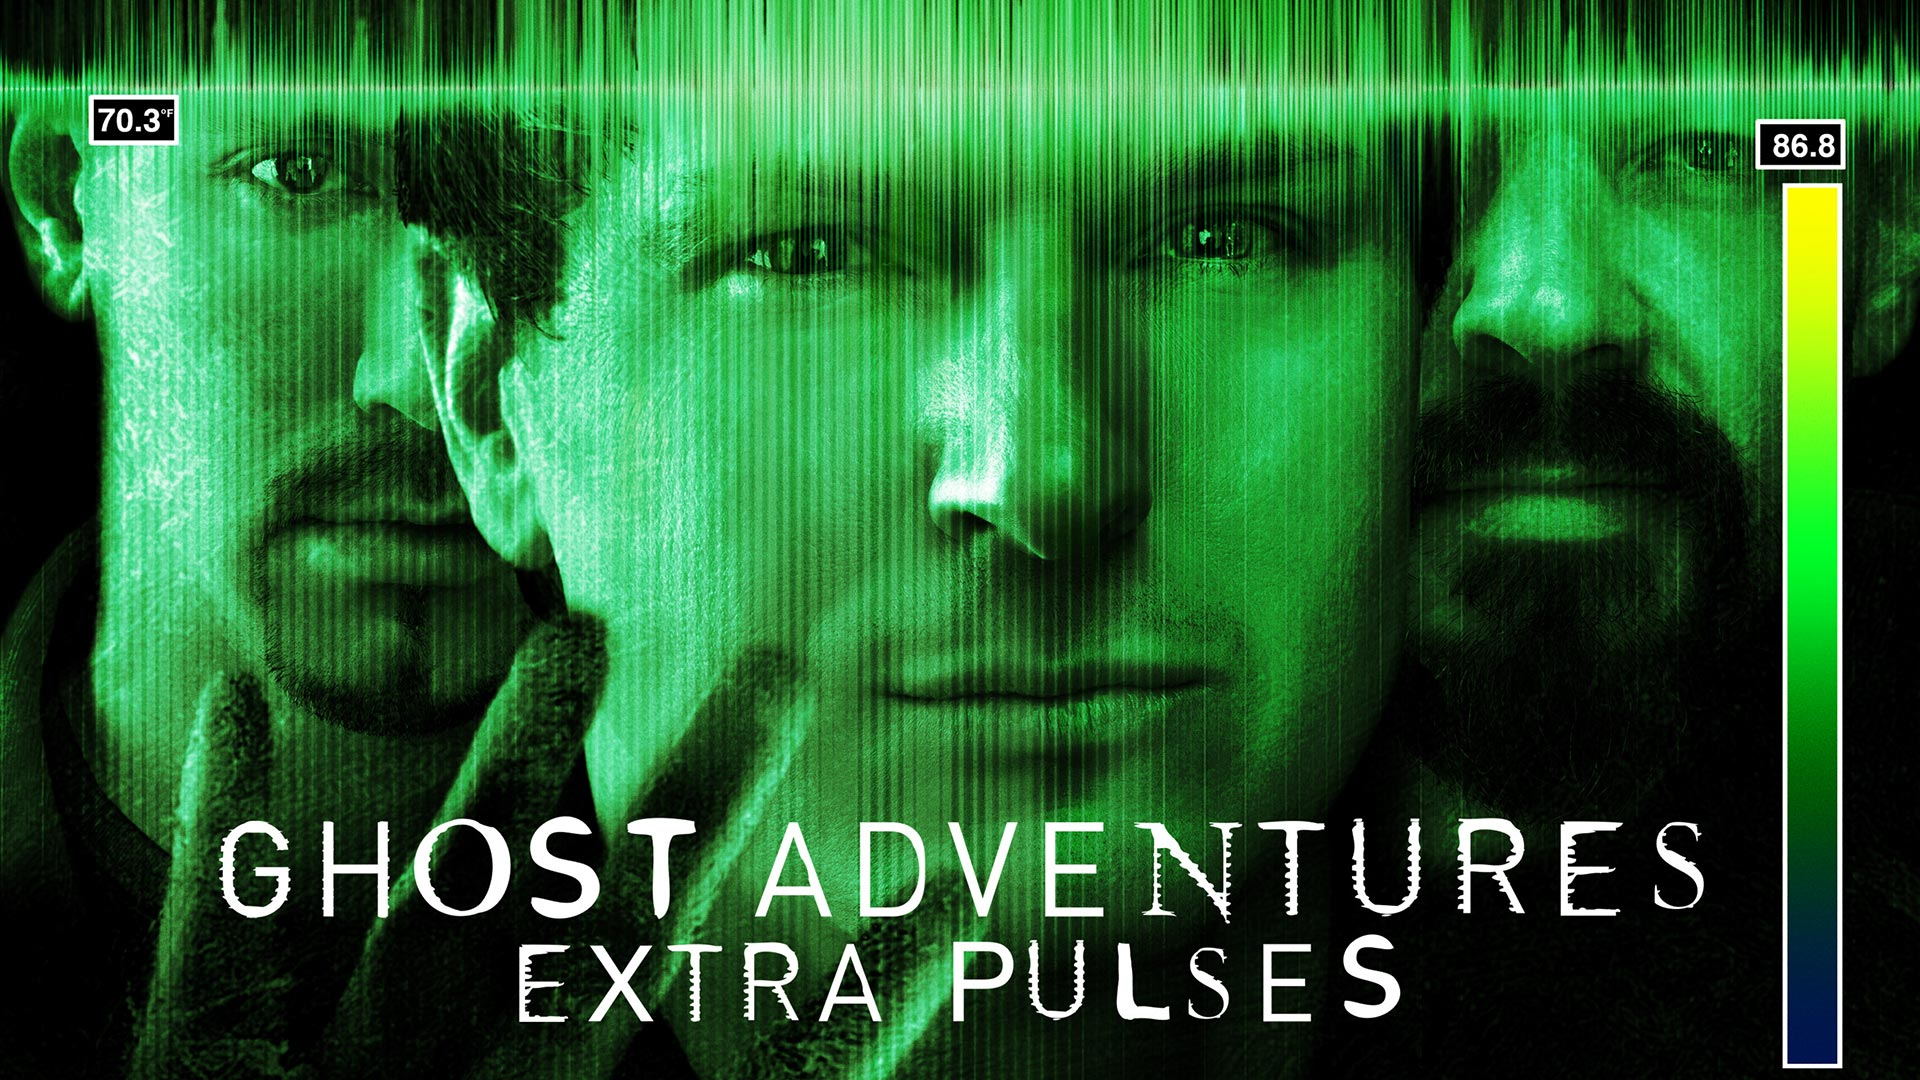 Ghost Adventures: Extra Pulses, Vol. 1